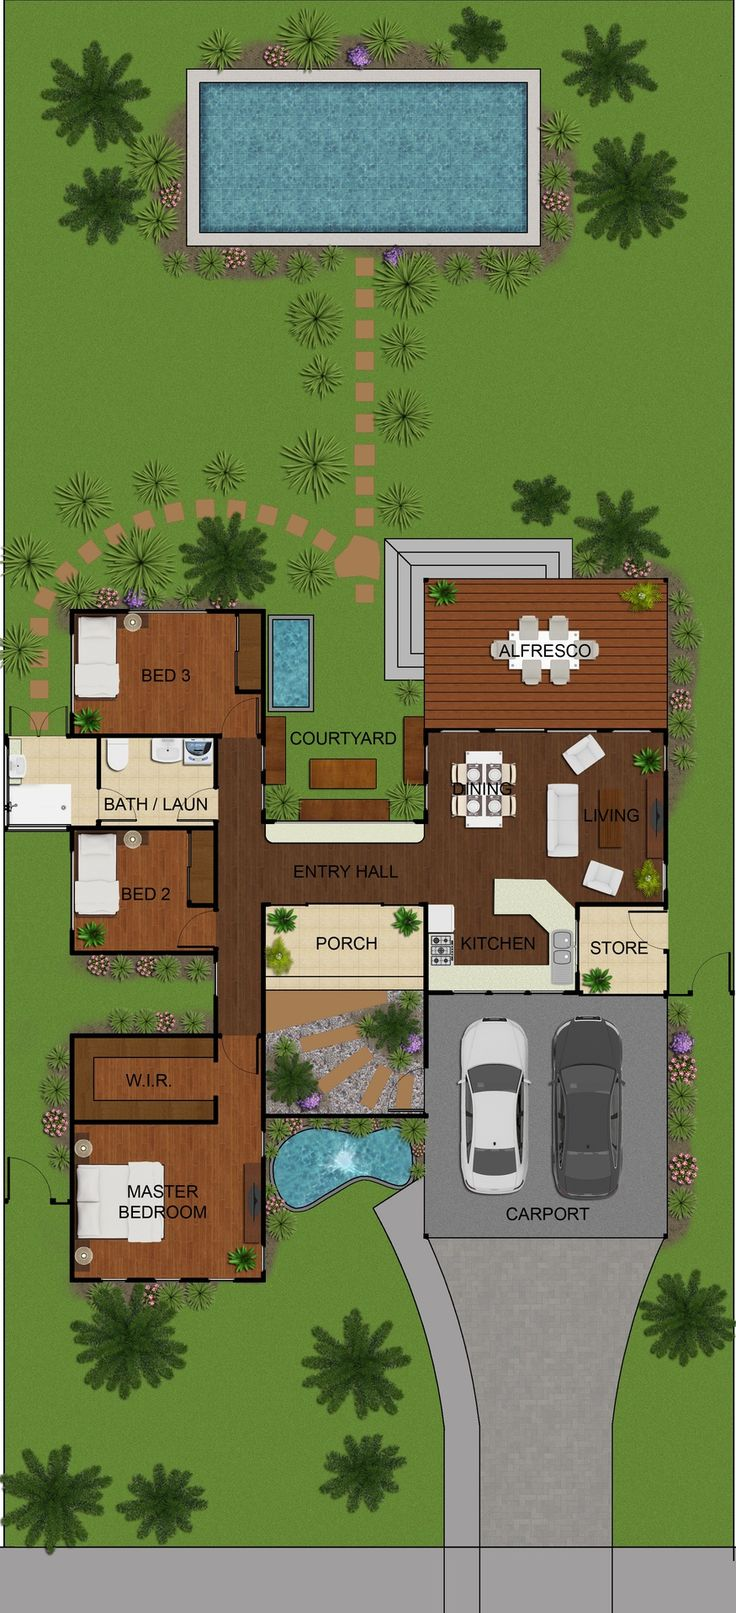 17 best images about plantas e projetos on pinterest for Home site plan